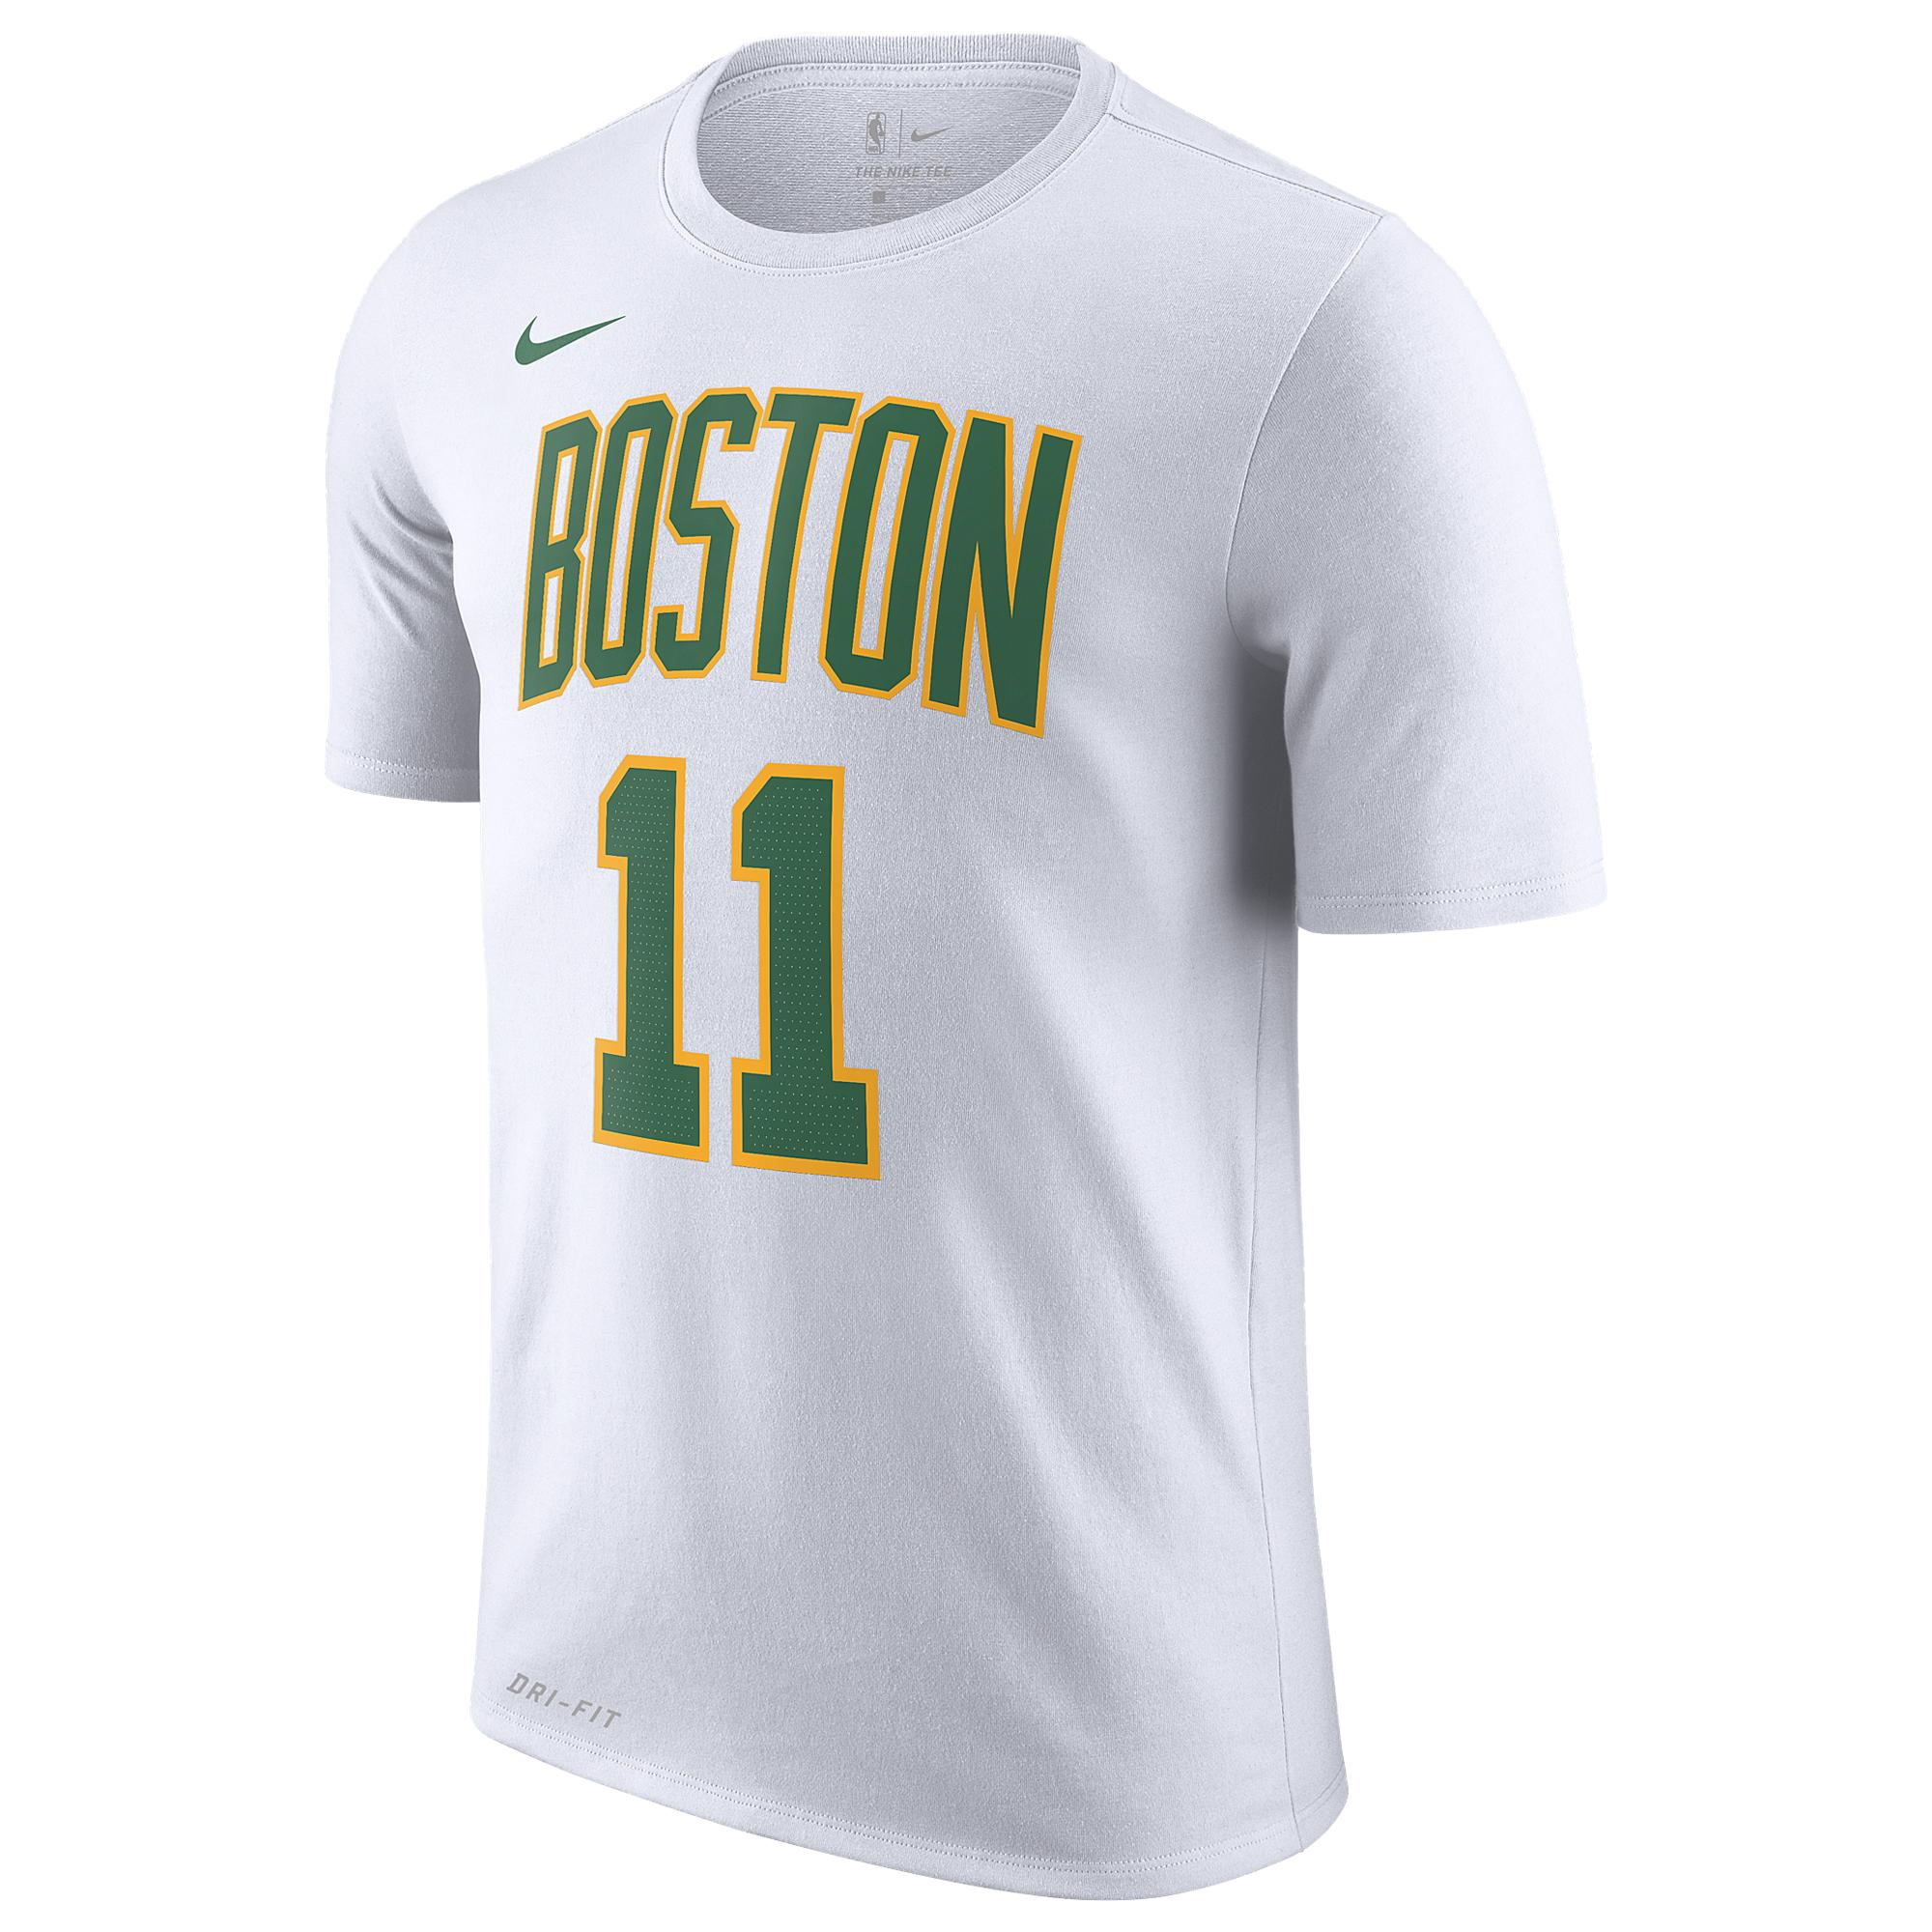 3ef844077d9 Nike Kyrie Irving Nba City Edition Name & Number T-shirt in White ...